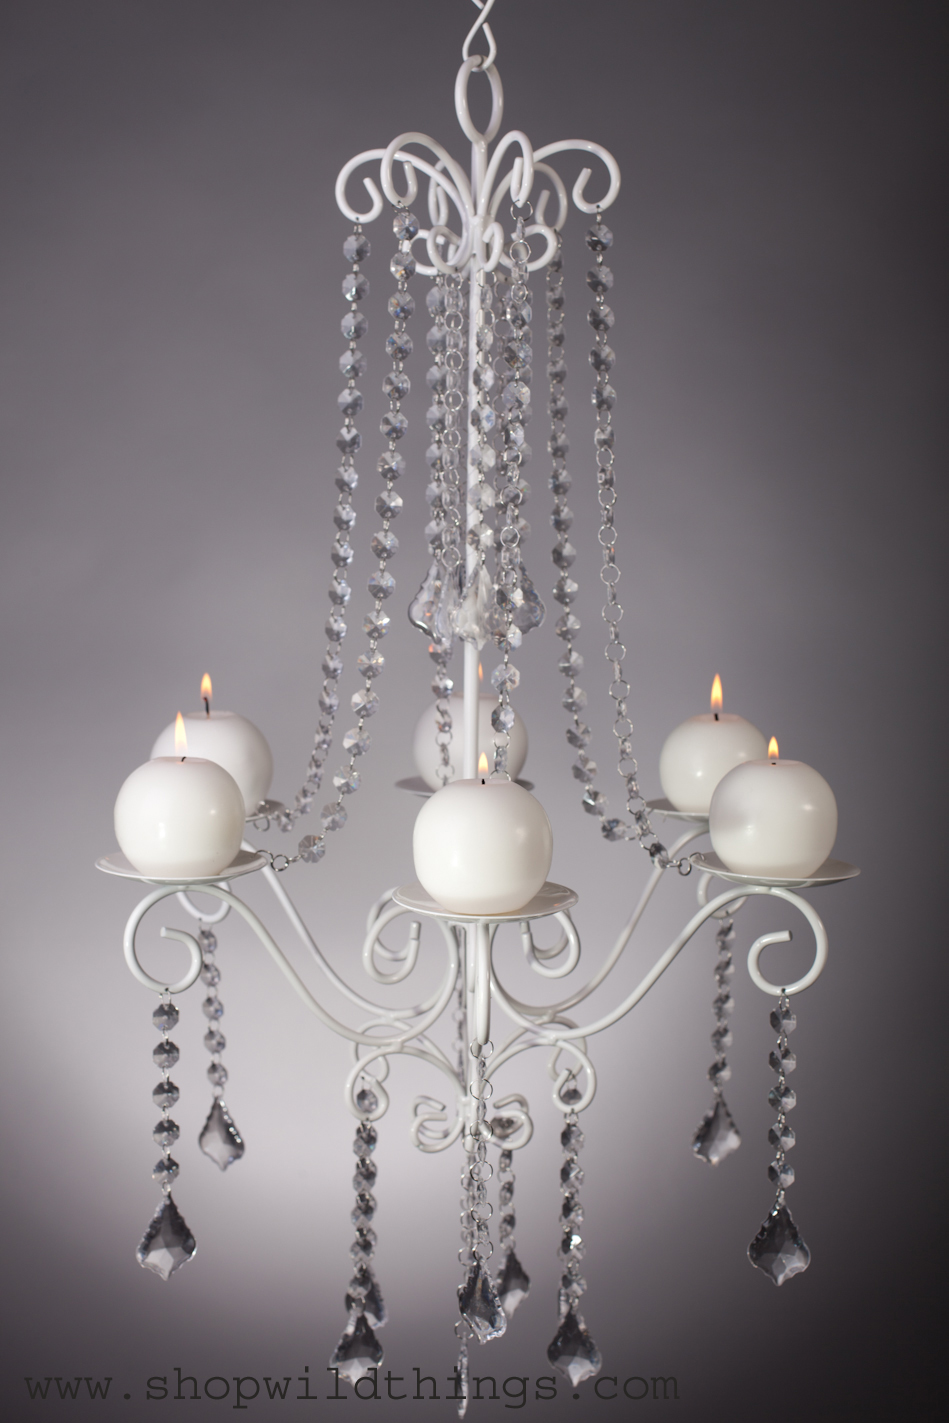 Crystal White Wedding D cor Candle Chandelier Hang or – White Candle Chandelier